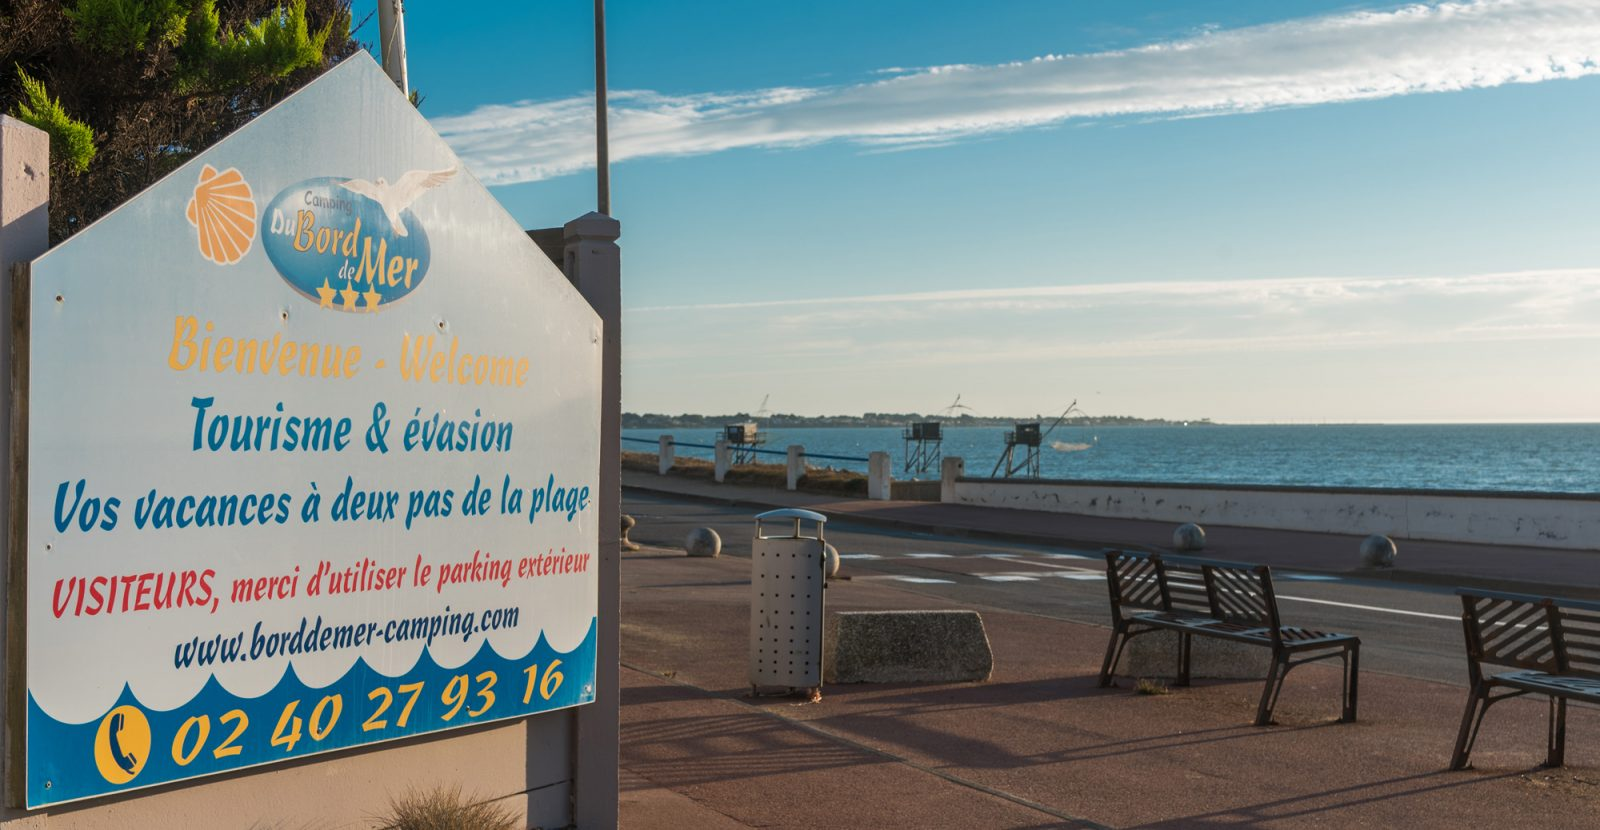 Welcome to Camping Du Bord de Mer, your campsite beside the sea at ...